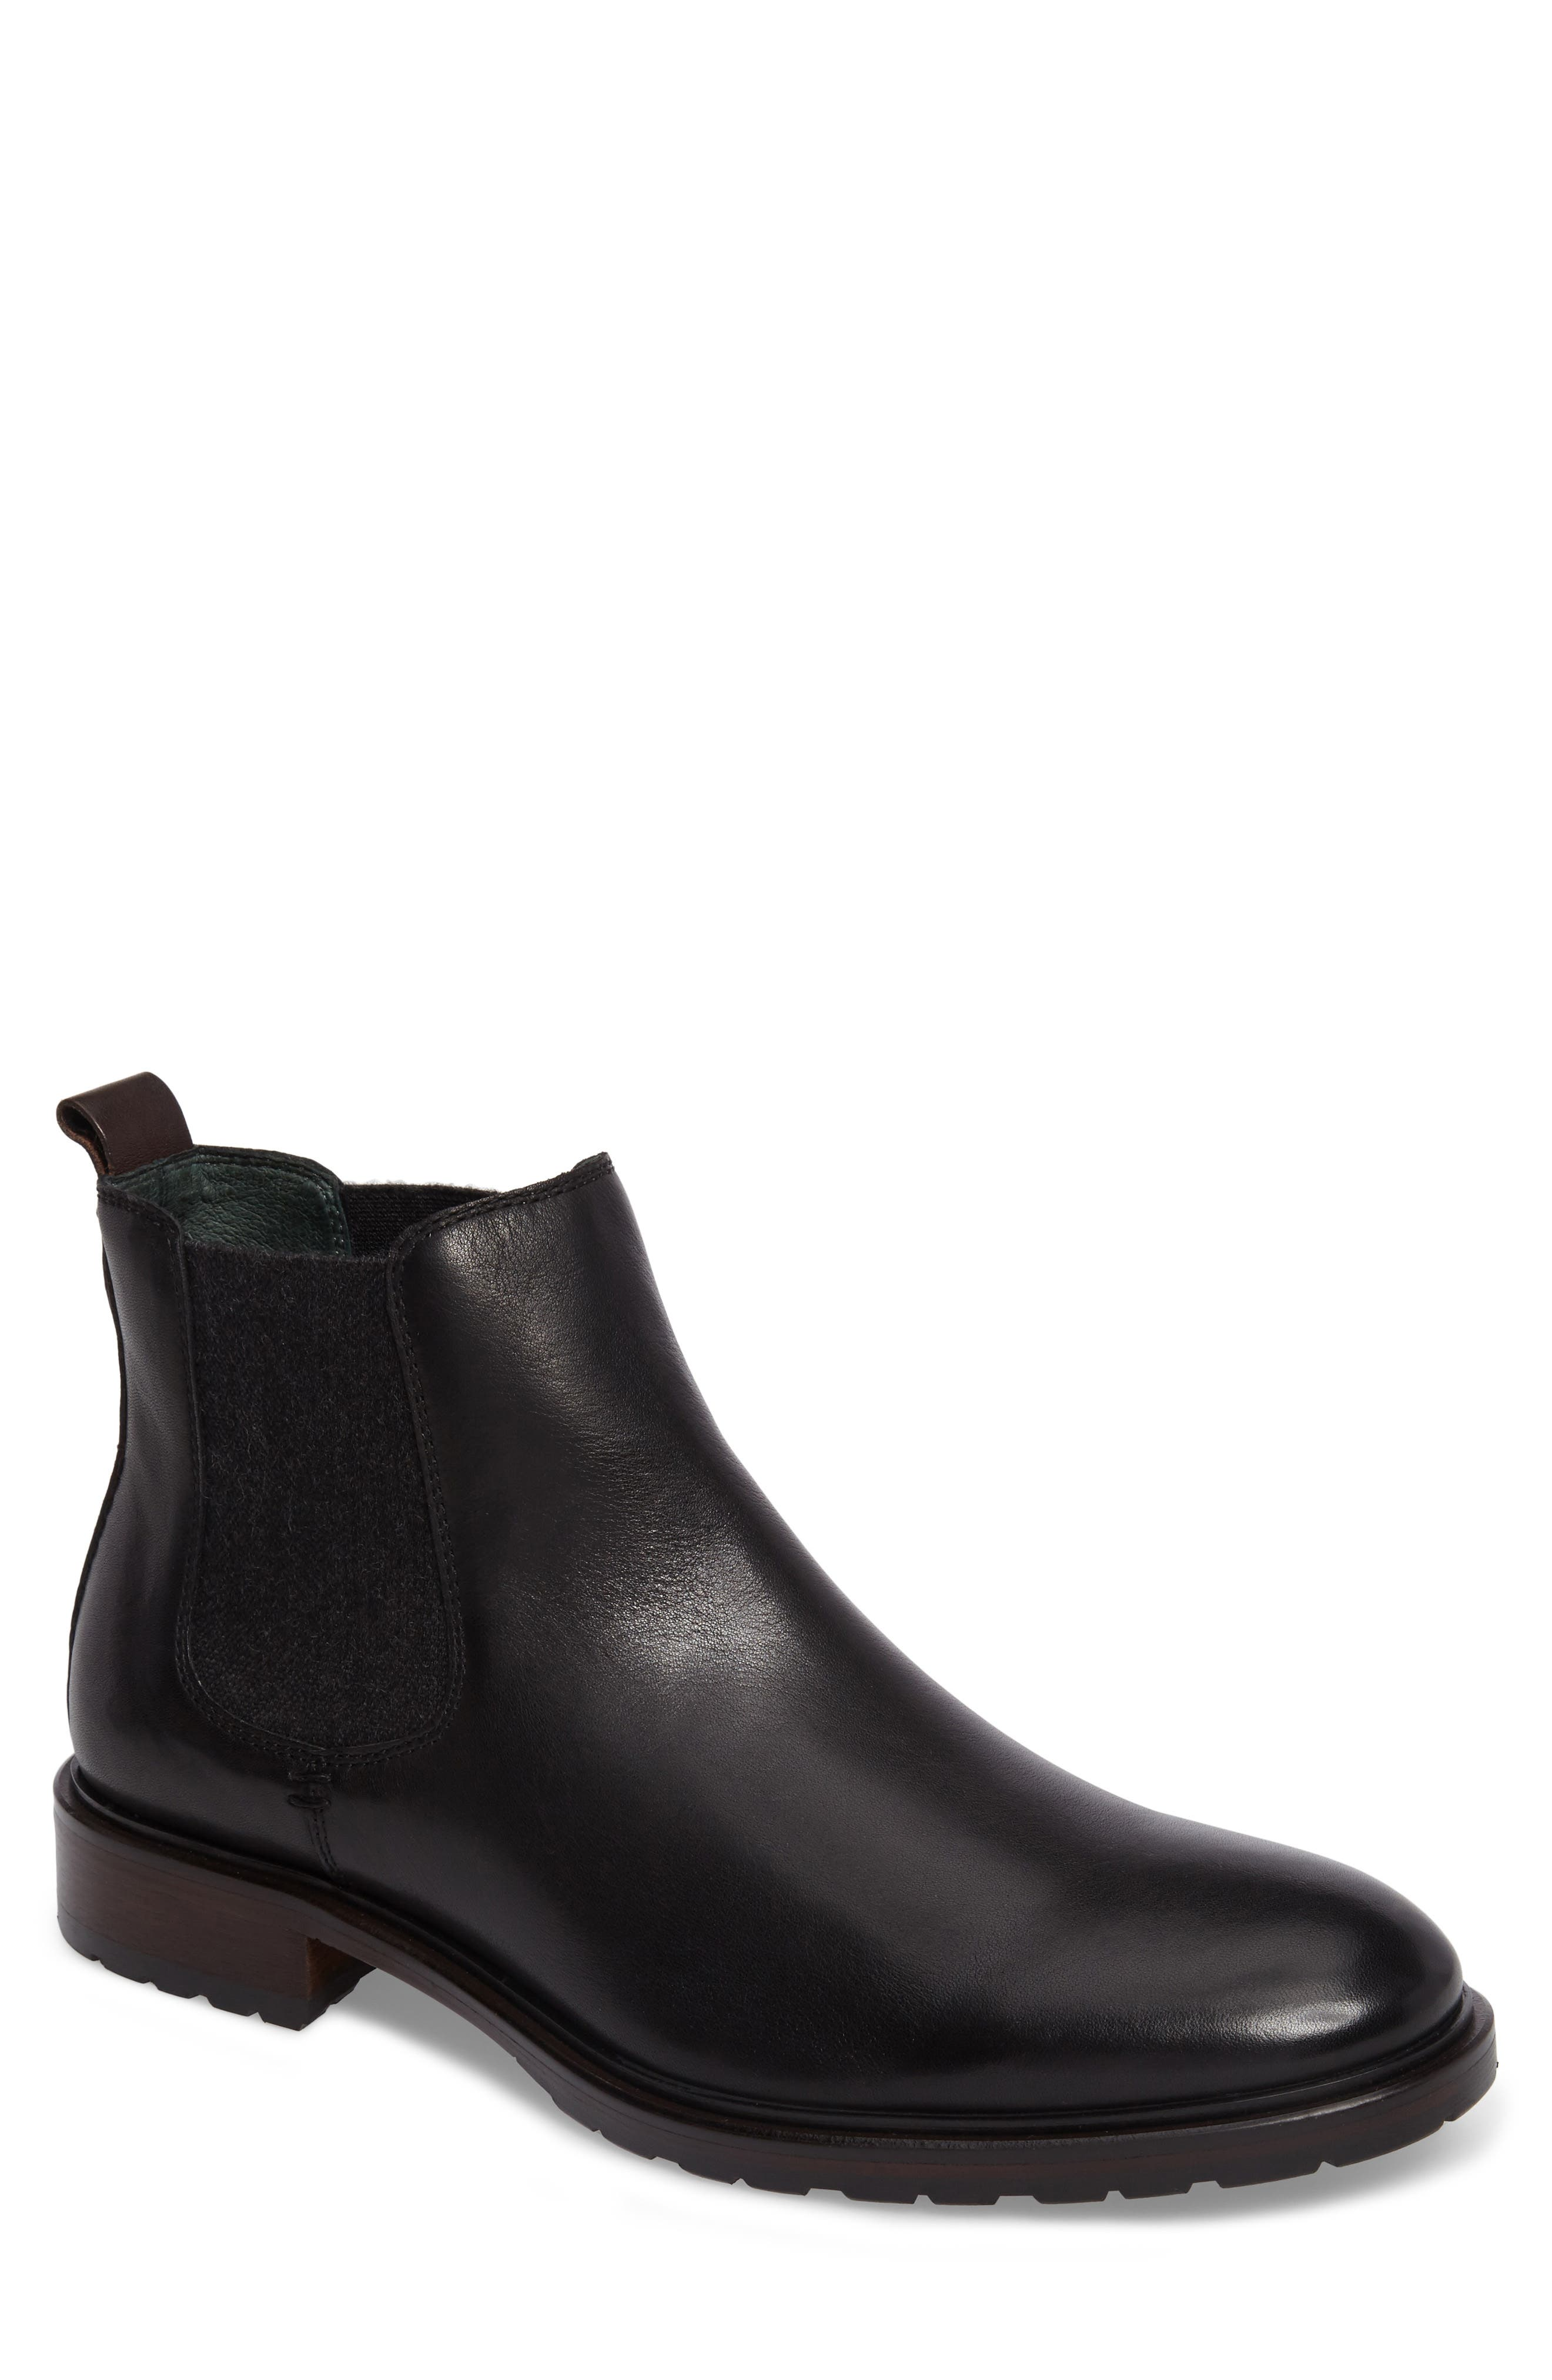 Myles Chelsea Boot,                             Main thumbnail 1, color,                             001